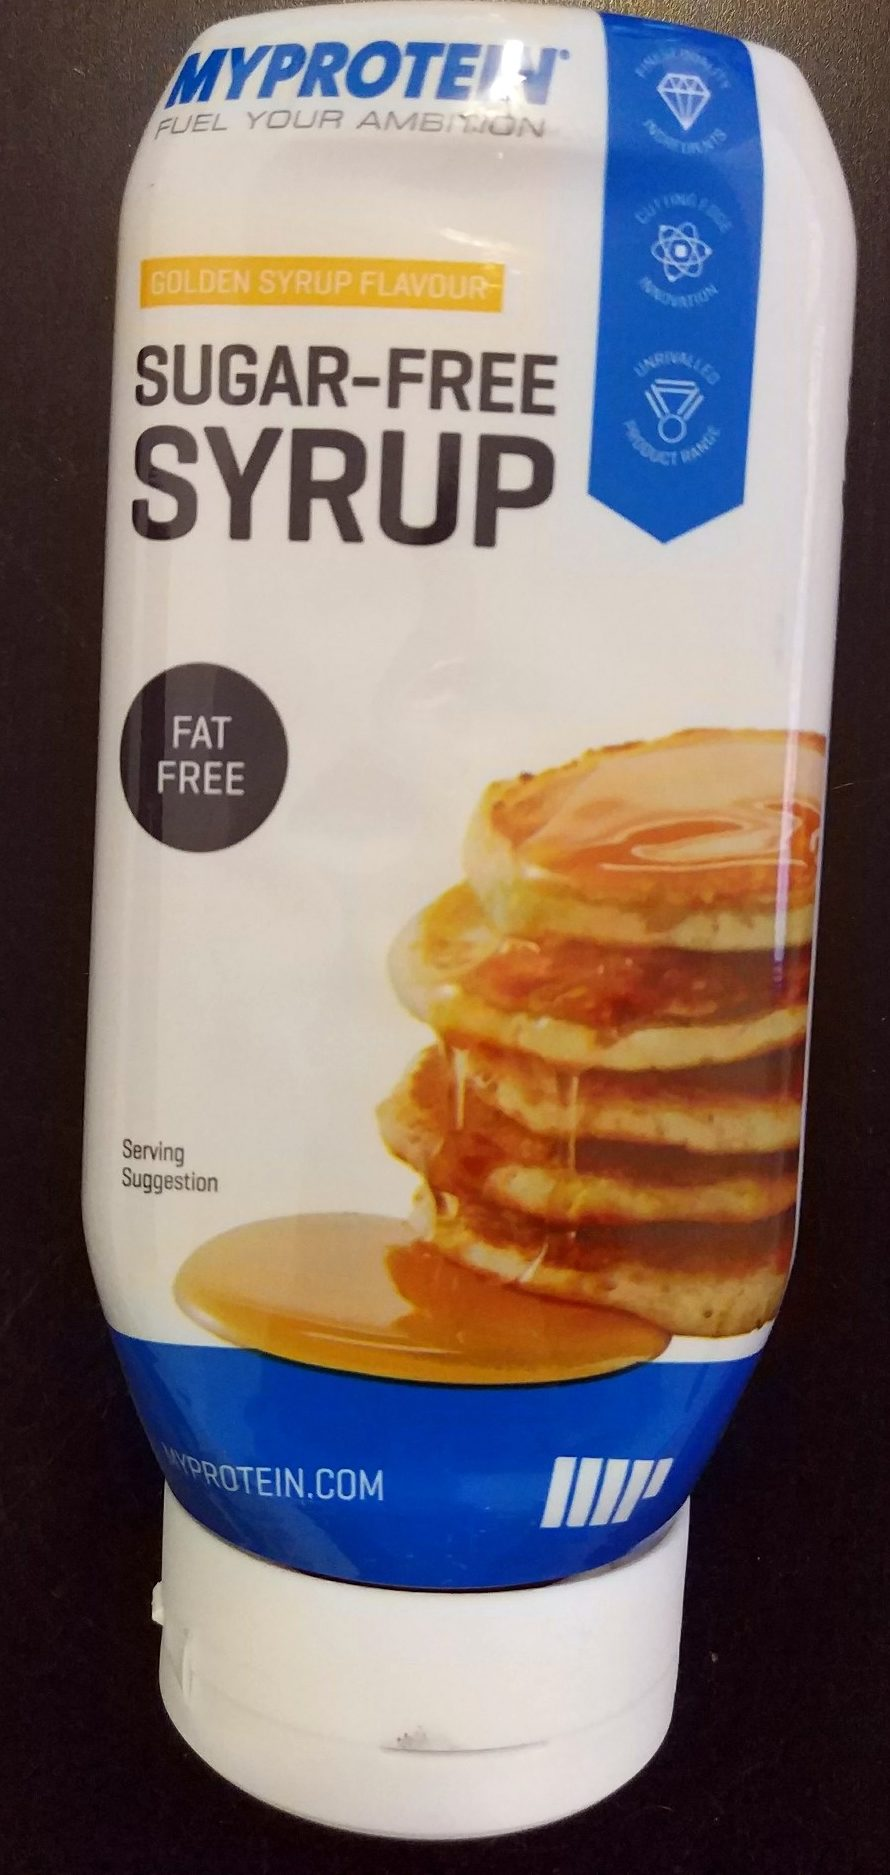 Sugar-Free Syrup Golden Syrup Flavour - Produit